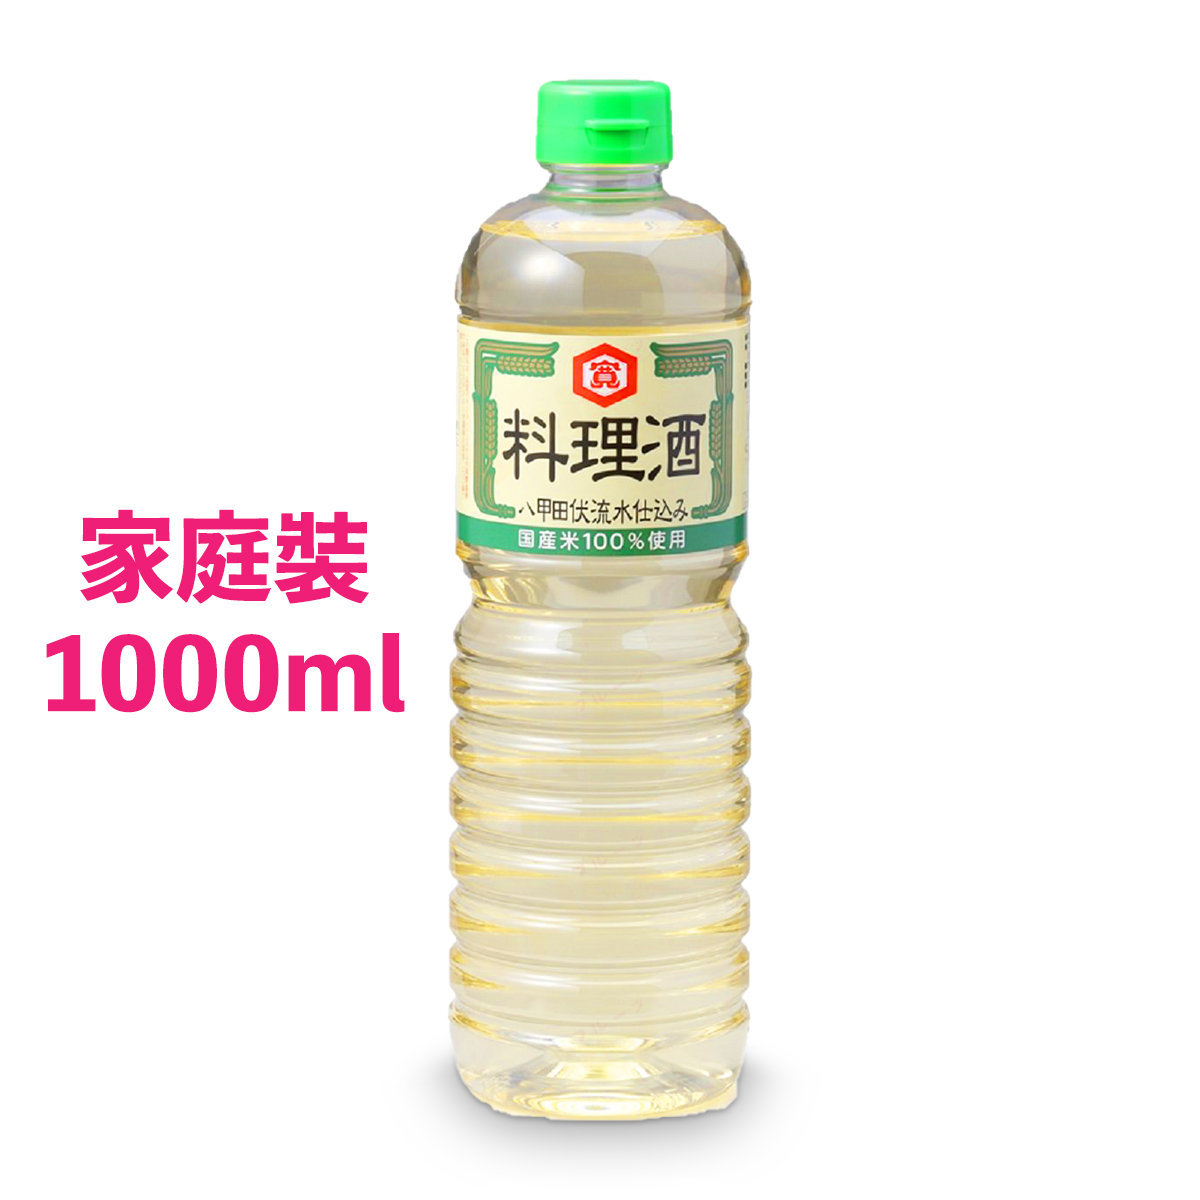 Japanese Cooking Wine (1L)